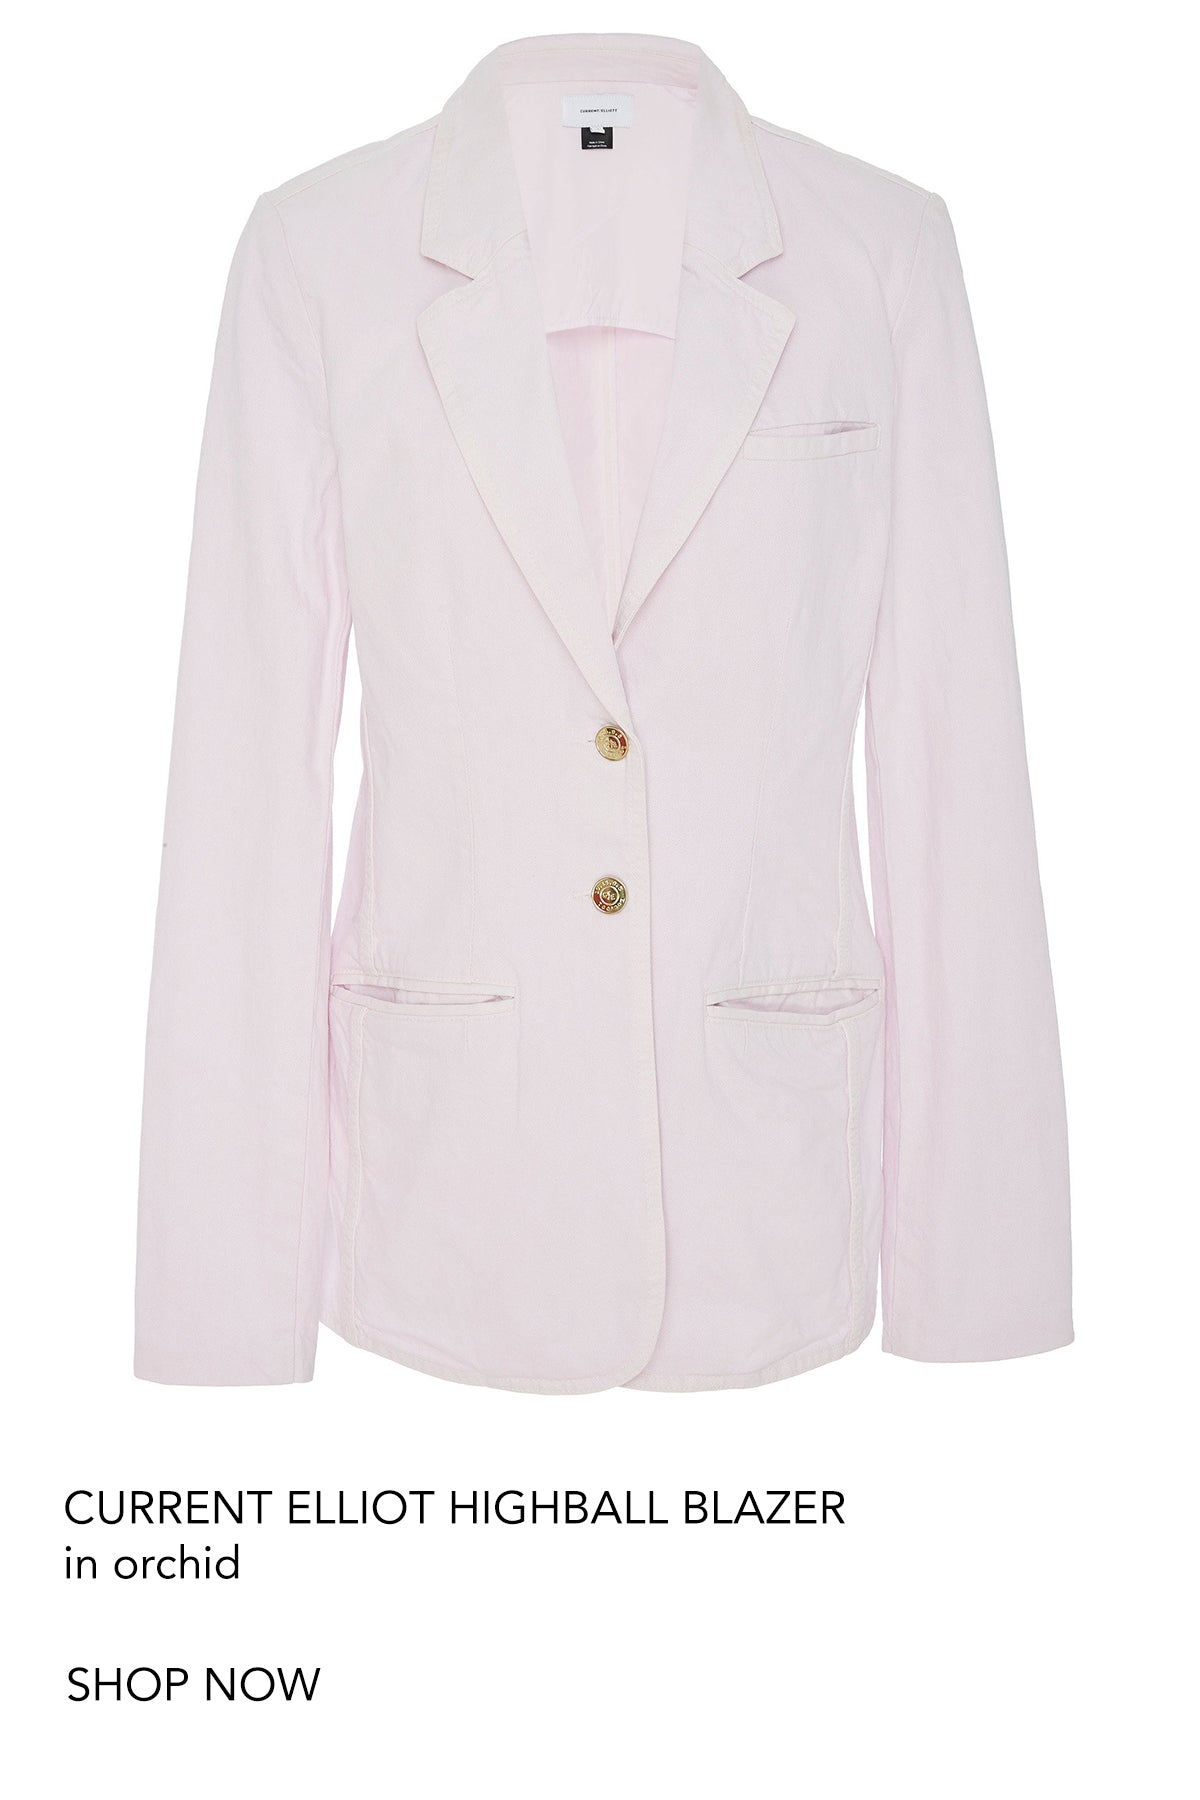 current elliot highball blazer perth australia fashion iridescent sea beach house